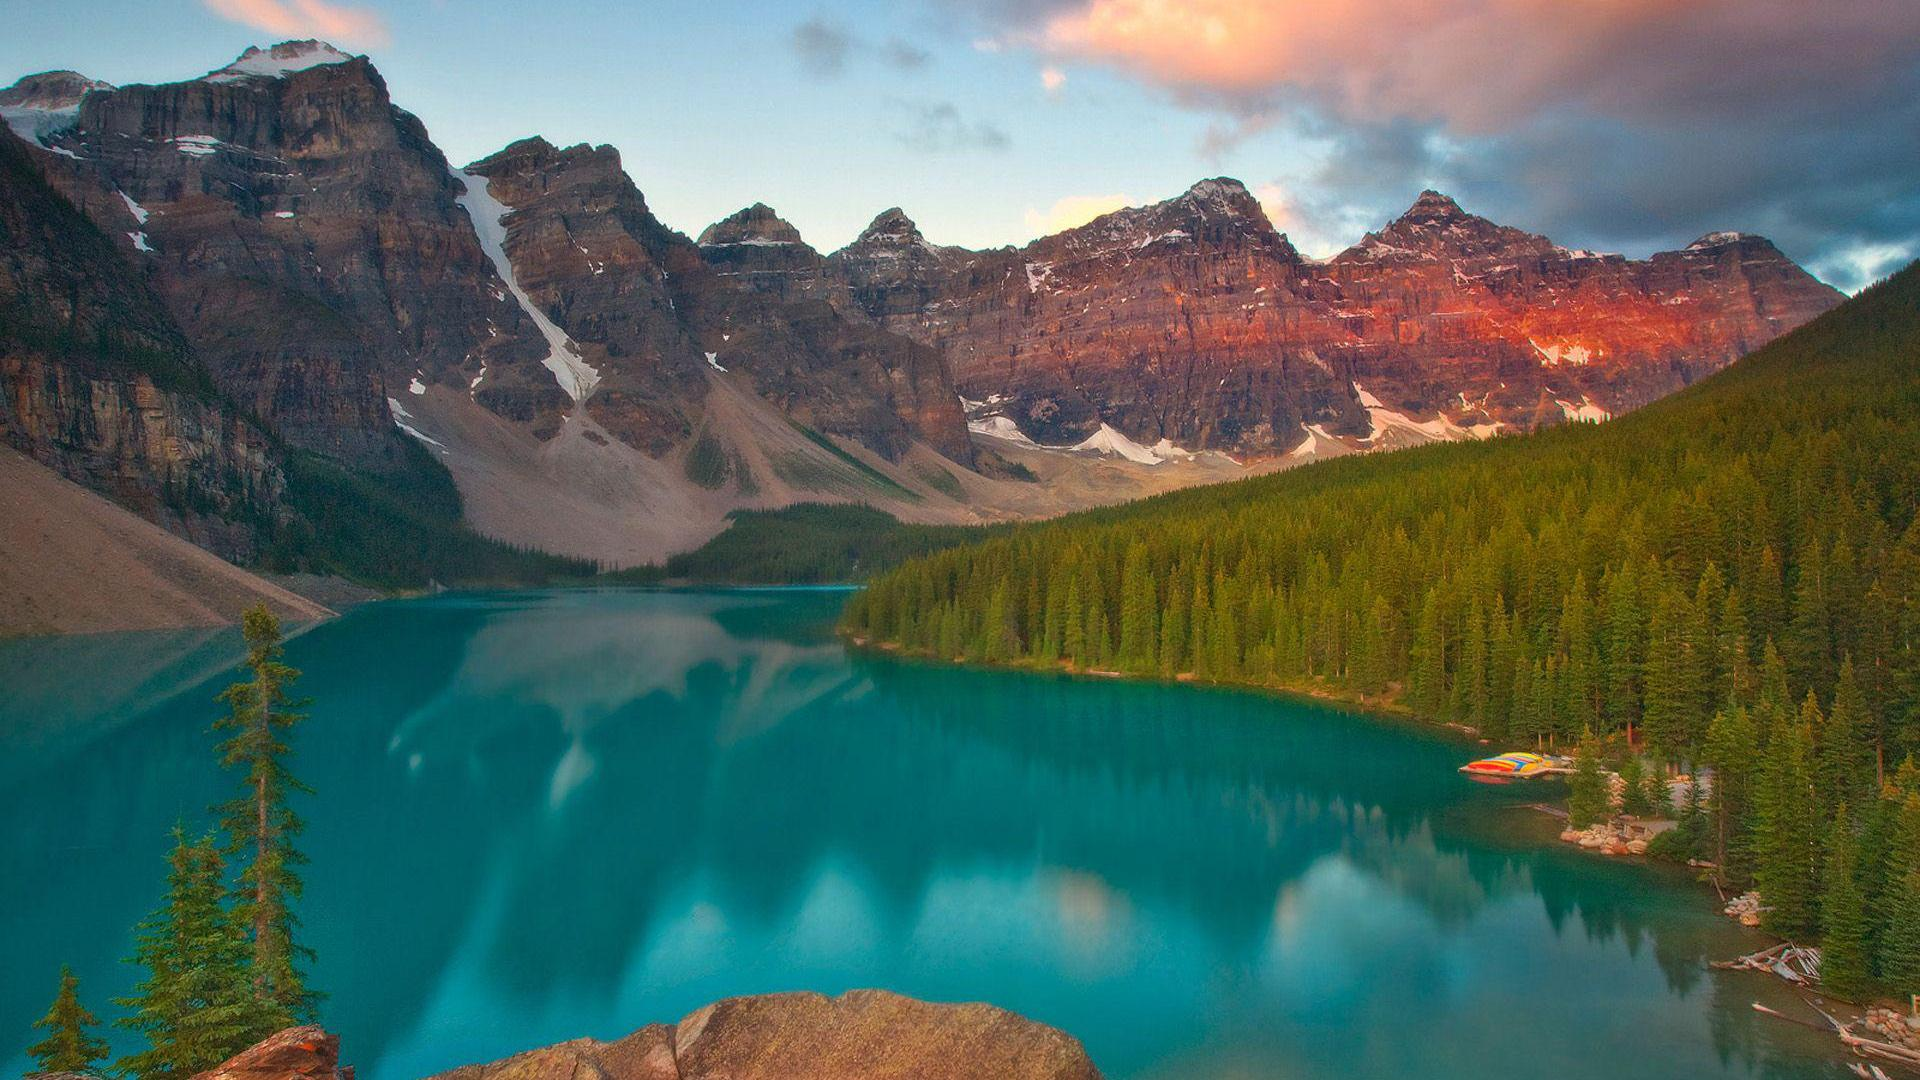 louise banff national park   111528   High Quality and Resolution 1920x1080